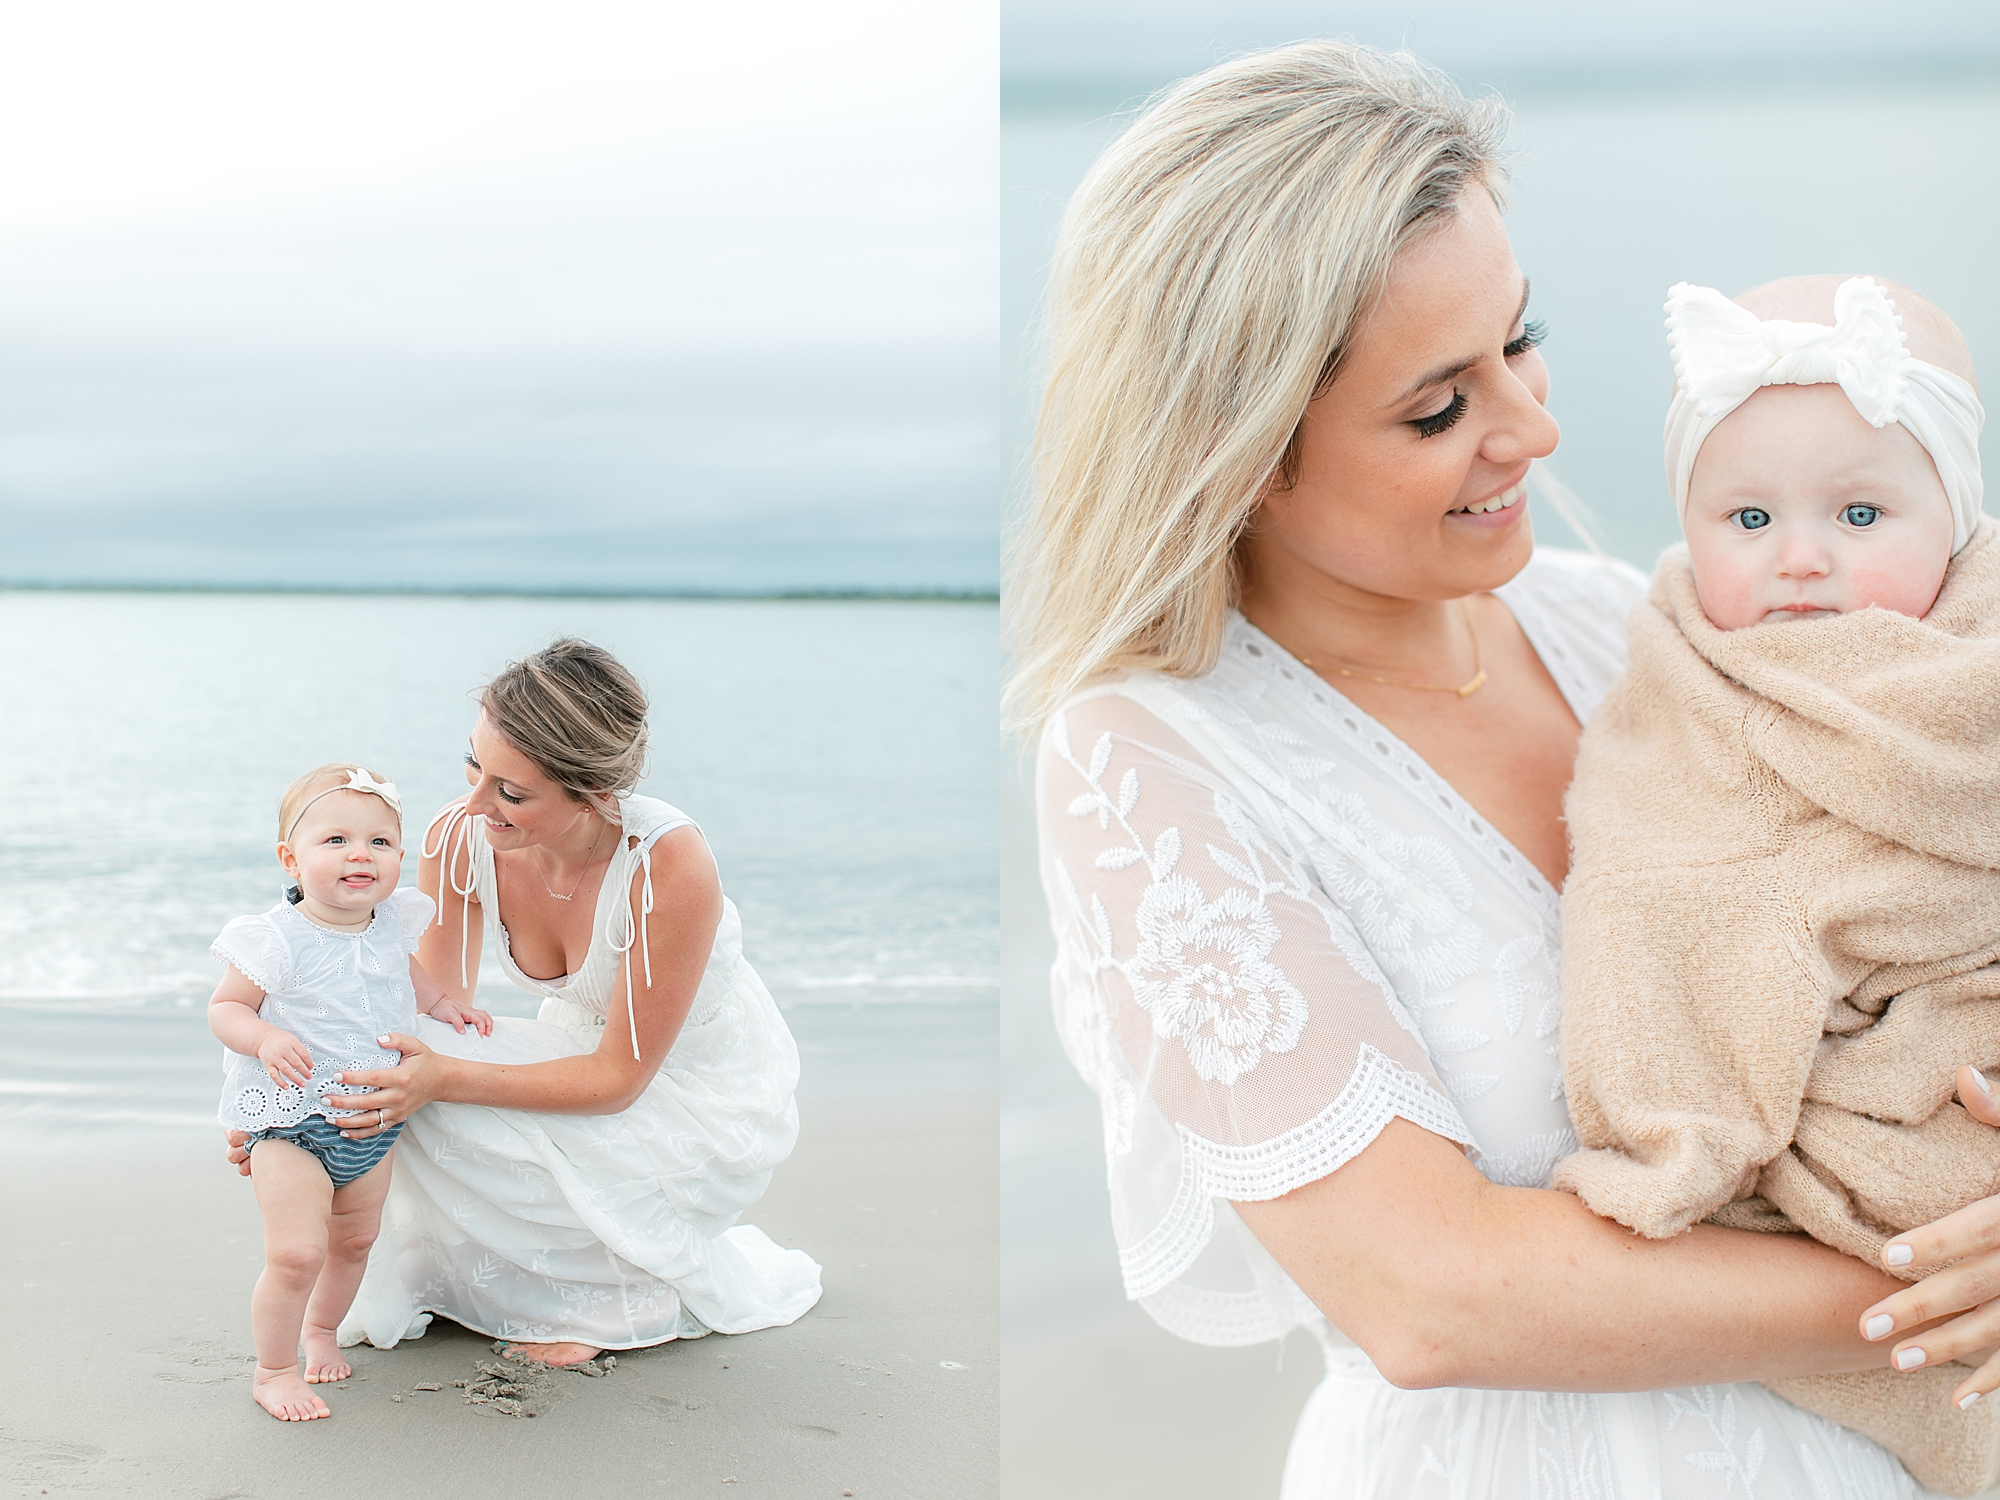 Beach Family Photography OCNJ Ocean City NJ by Magdalena Studios 0021 1